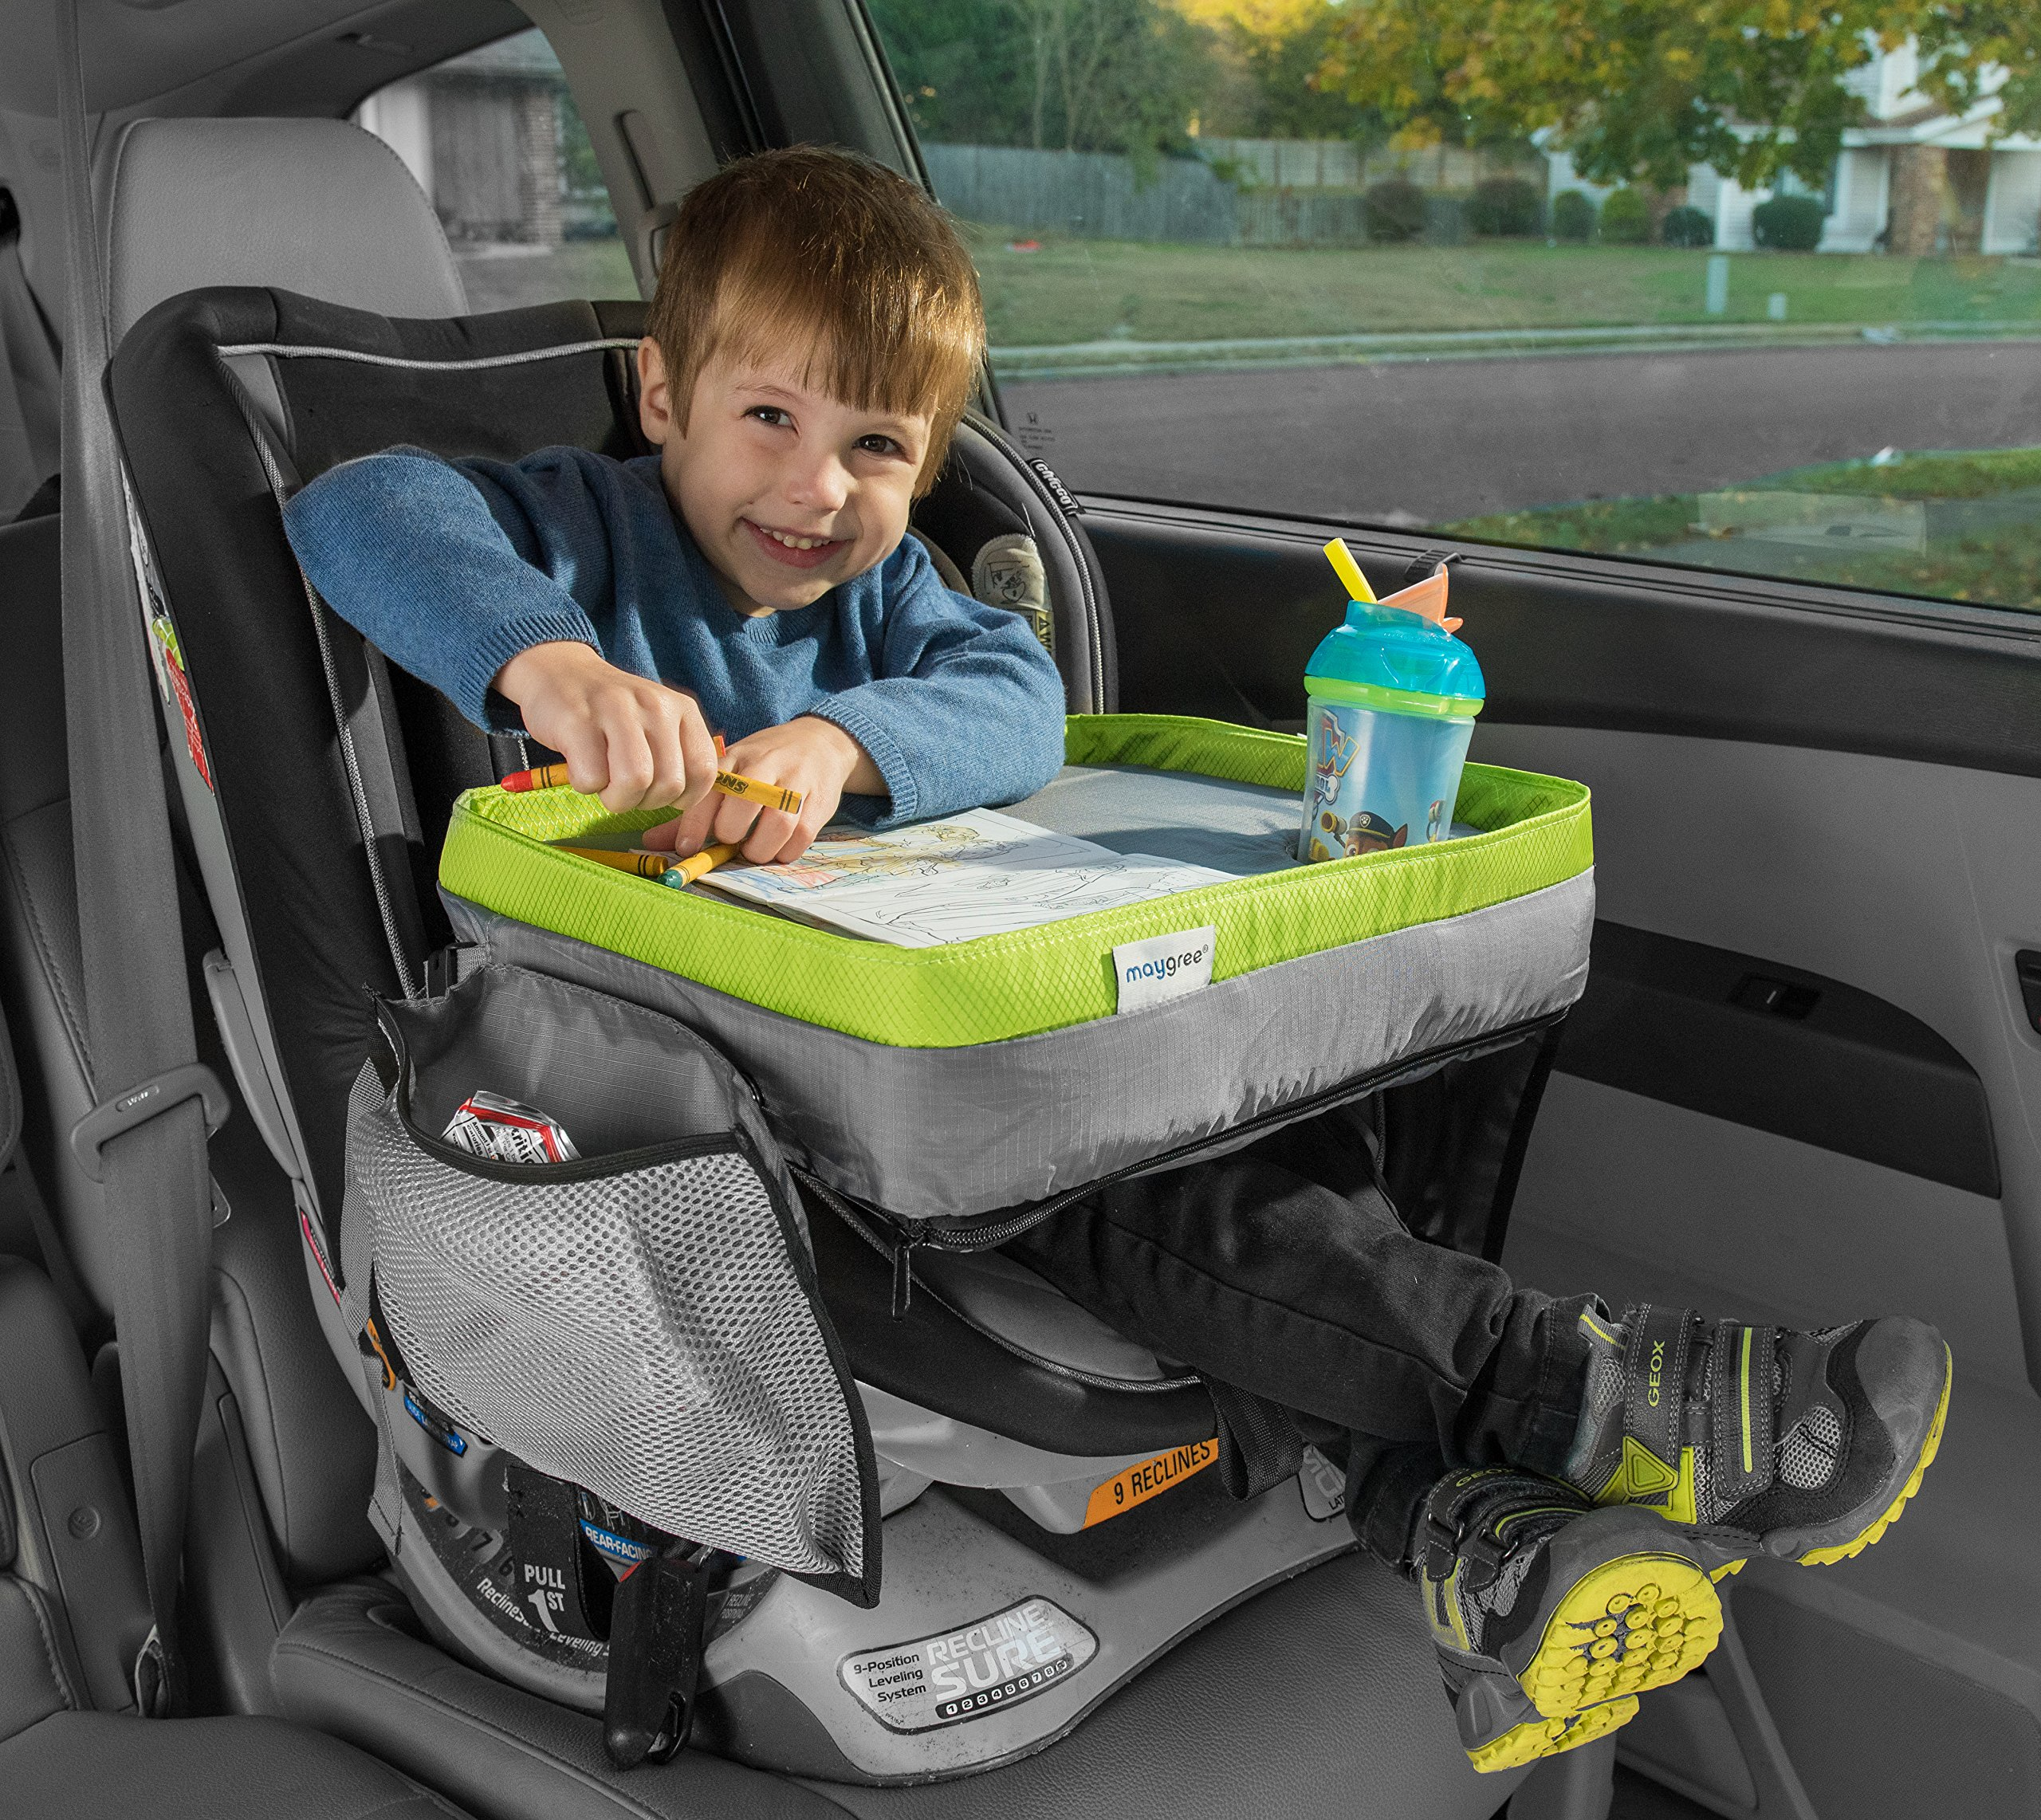 Kids Travel Tray - Soft and Sturdy Portable Lap Activity and Snack Desk for Cars, Planes and Strollers - Extra Deep Cup Holder, Reinforced Lip - Carry as Backpack or Messenger Bag - by Maygree by Maygree